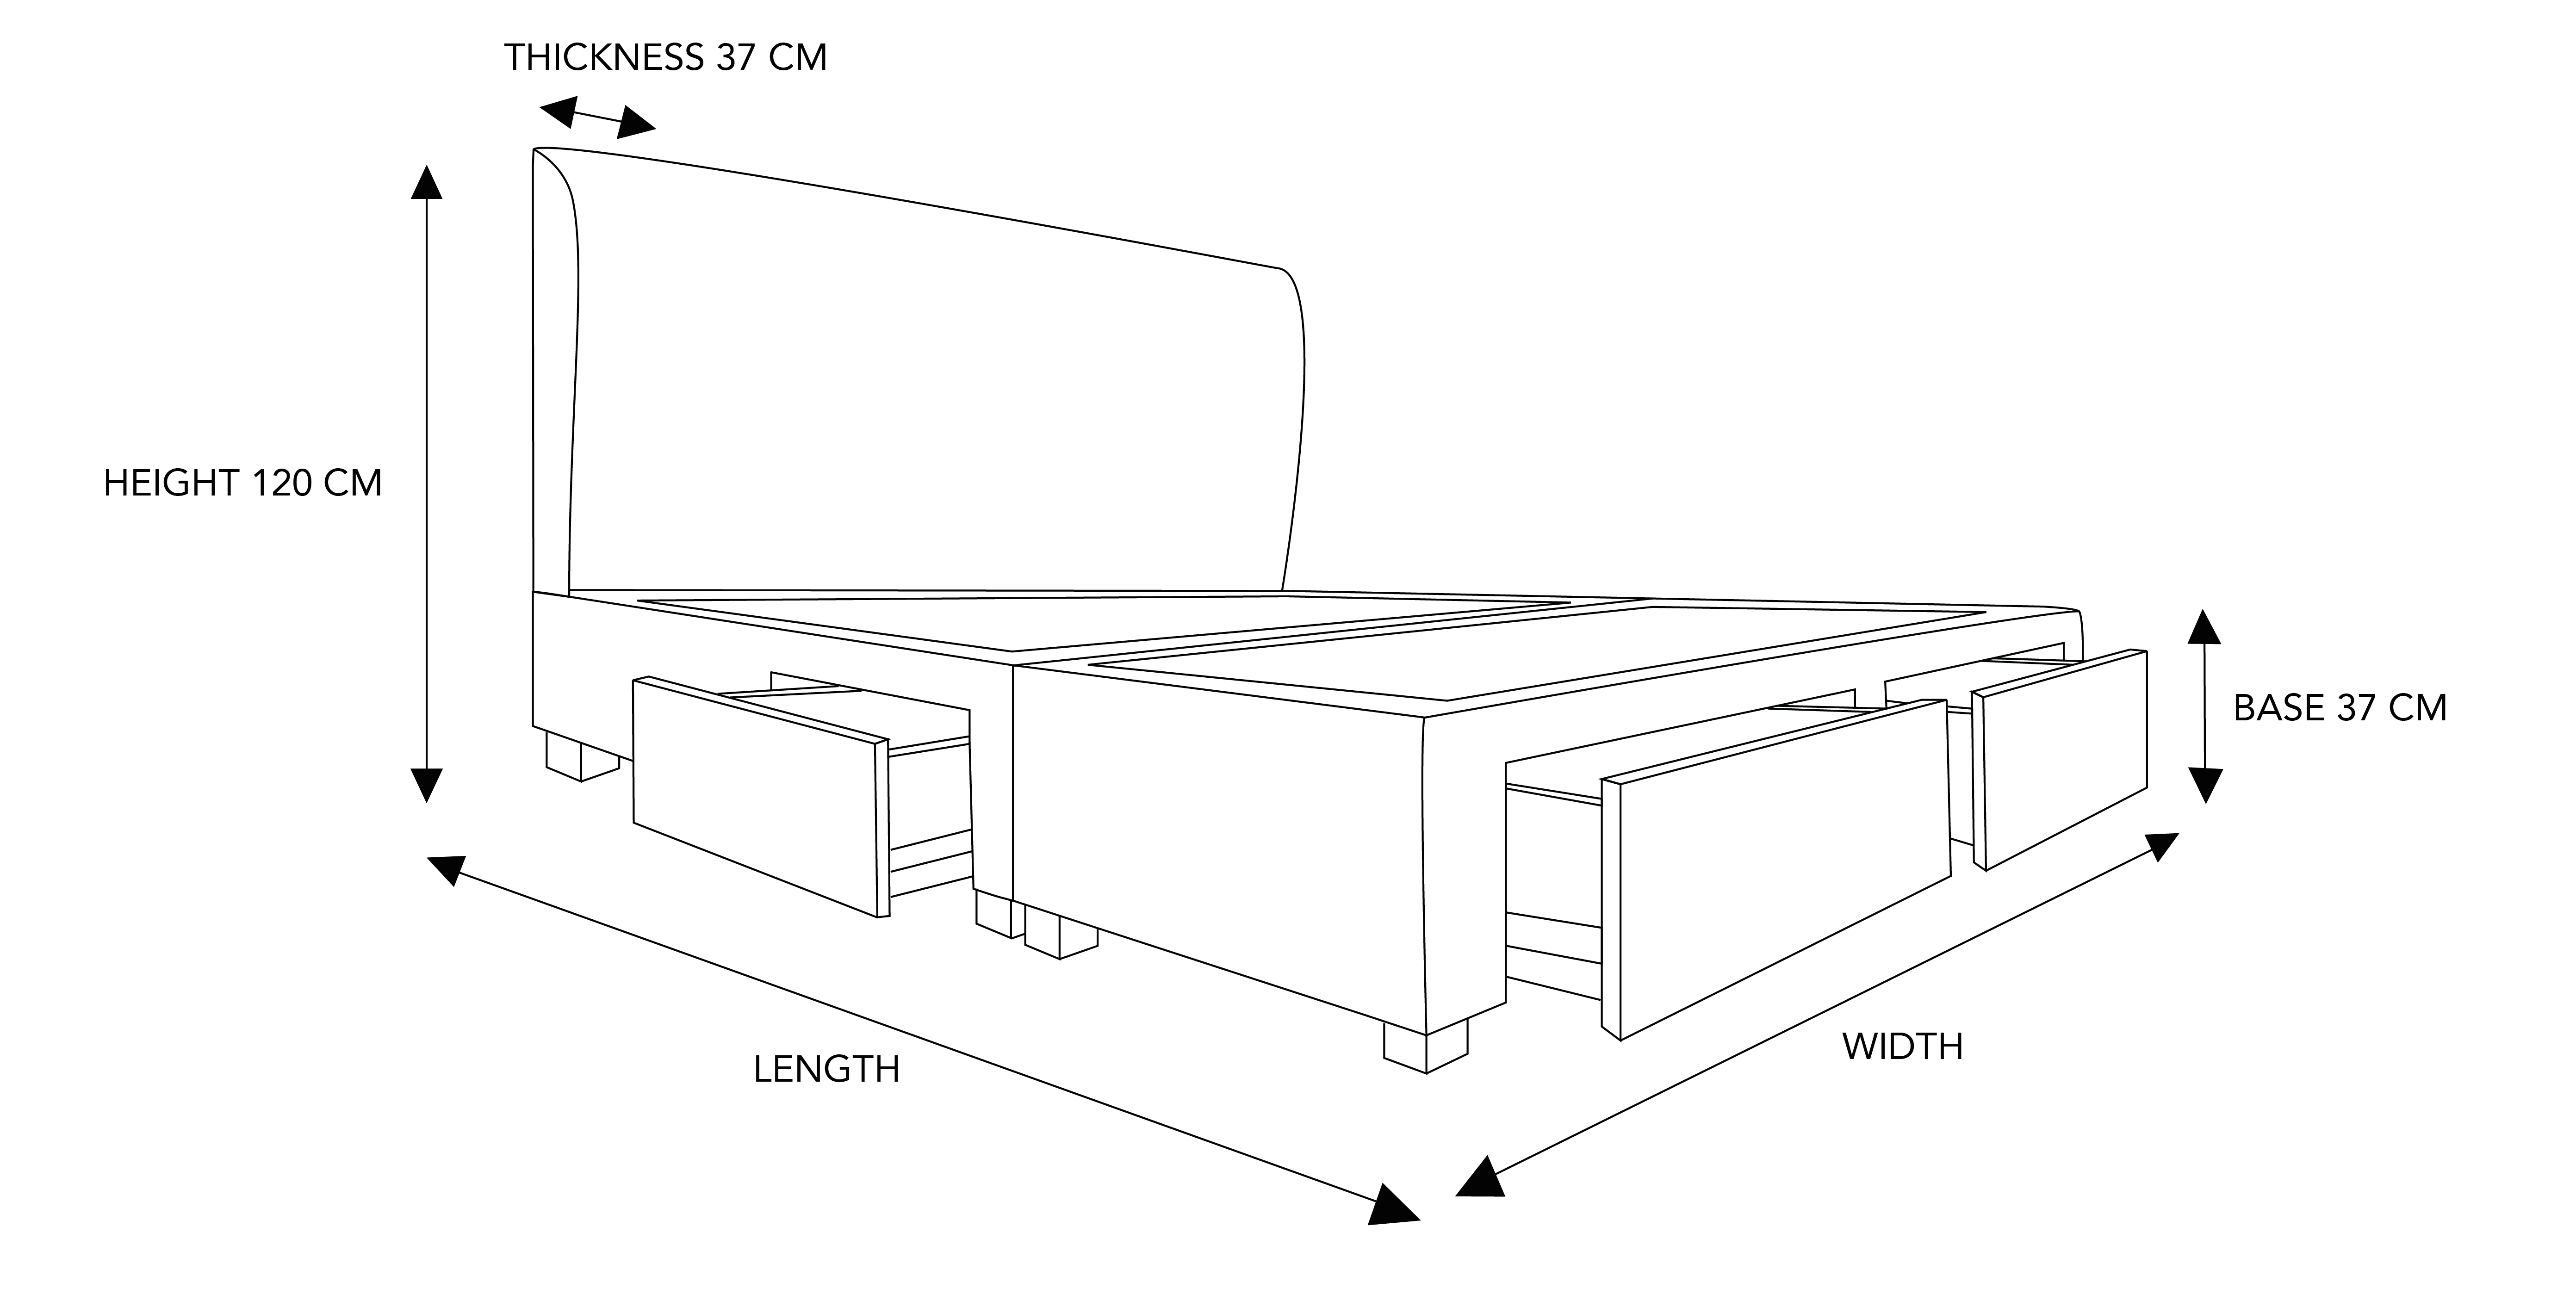 Bono Custom Storage Bed Frame Dimension Drawing - Design Your Own Bed